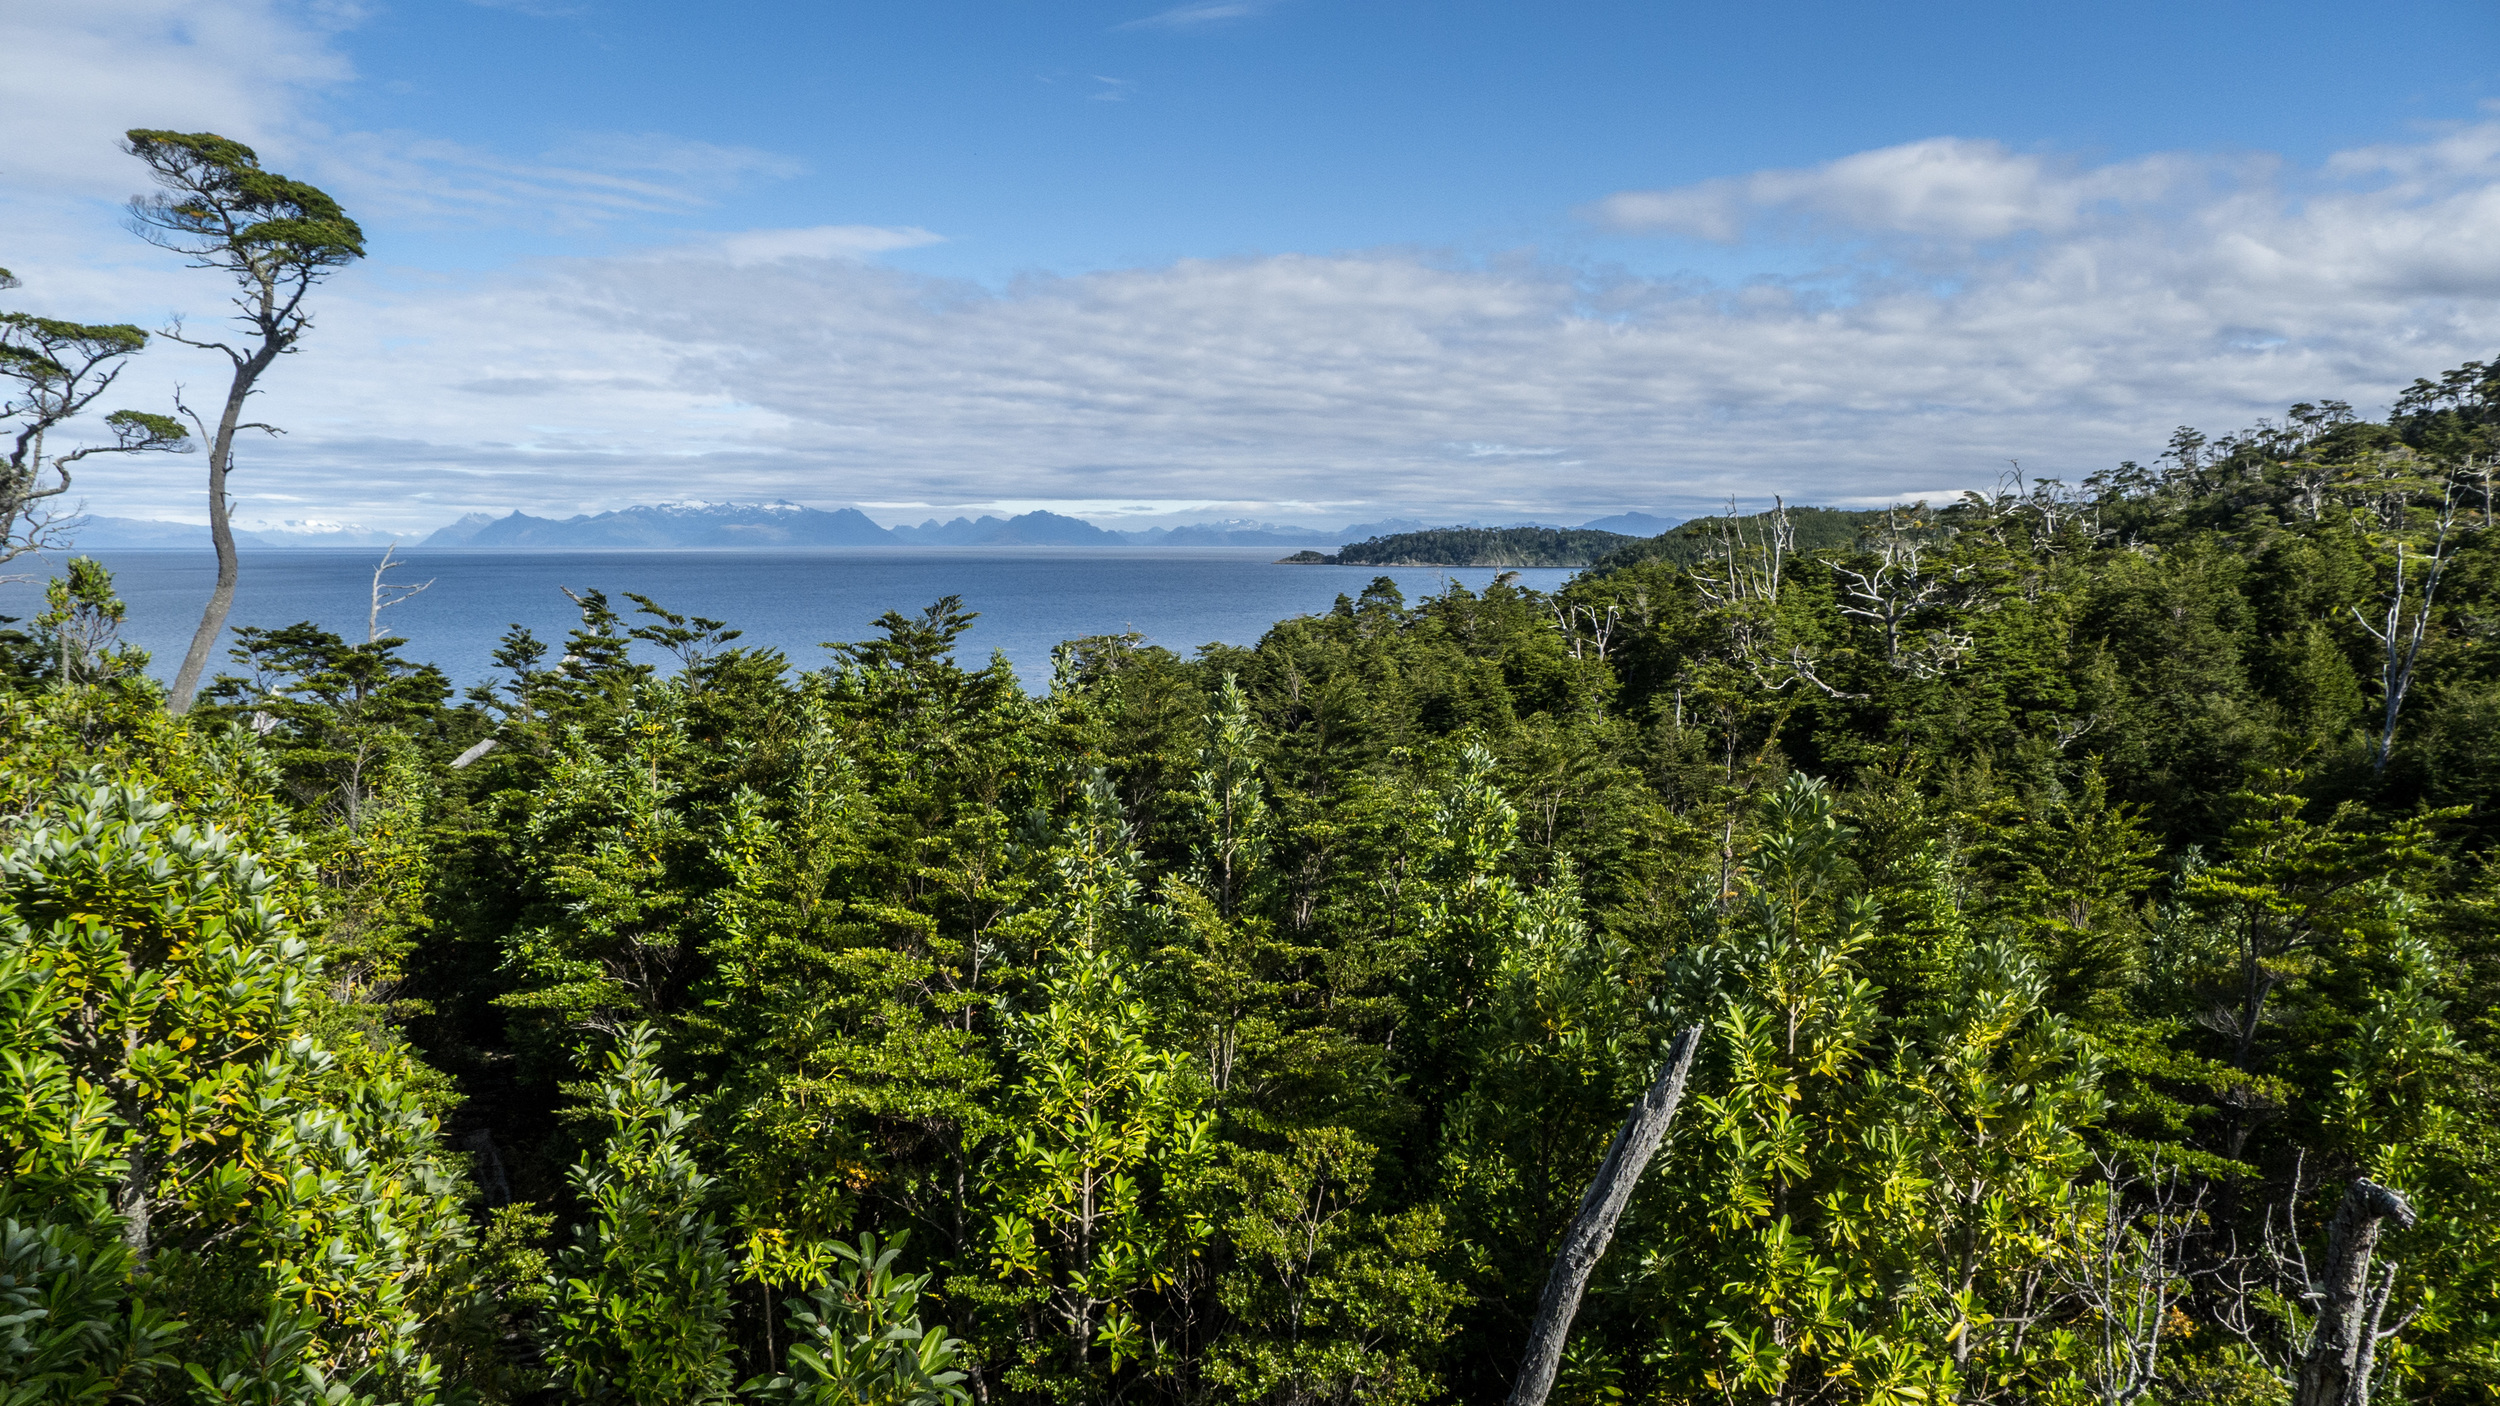 View of Tierra del Fuego from the Cabo Froward Hike